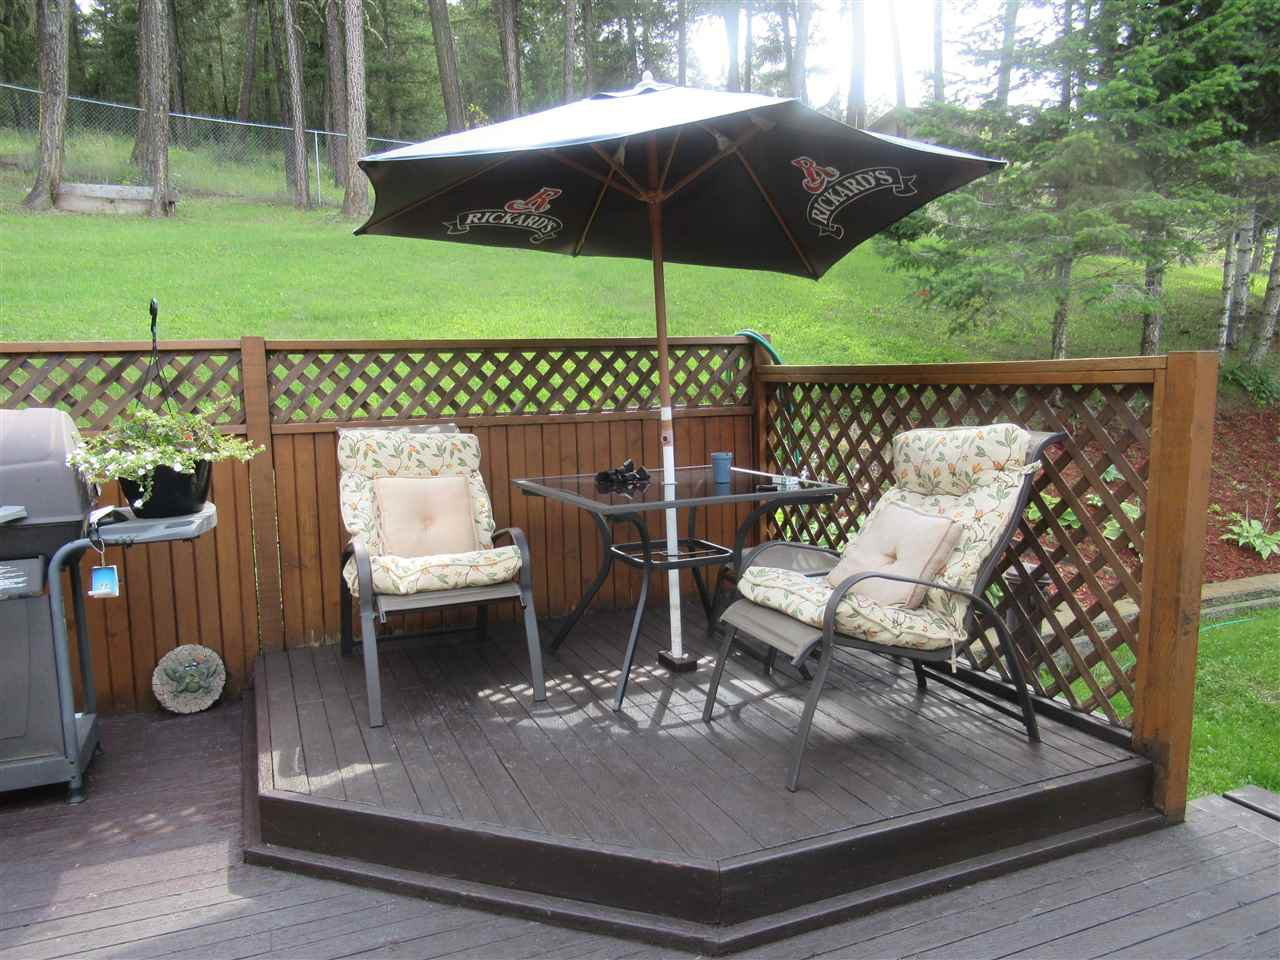 Photo 20: Photos: 607 ROBERTS Drive in Williams Lake: Esler/Dog Creek House for sale (Williams Lake (Zone 27))  : MLS®# R2391926